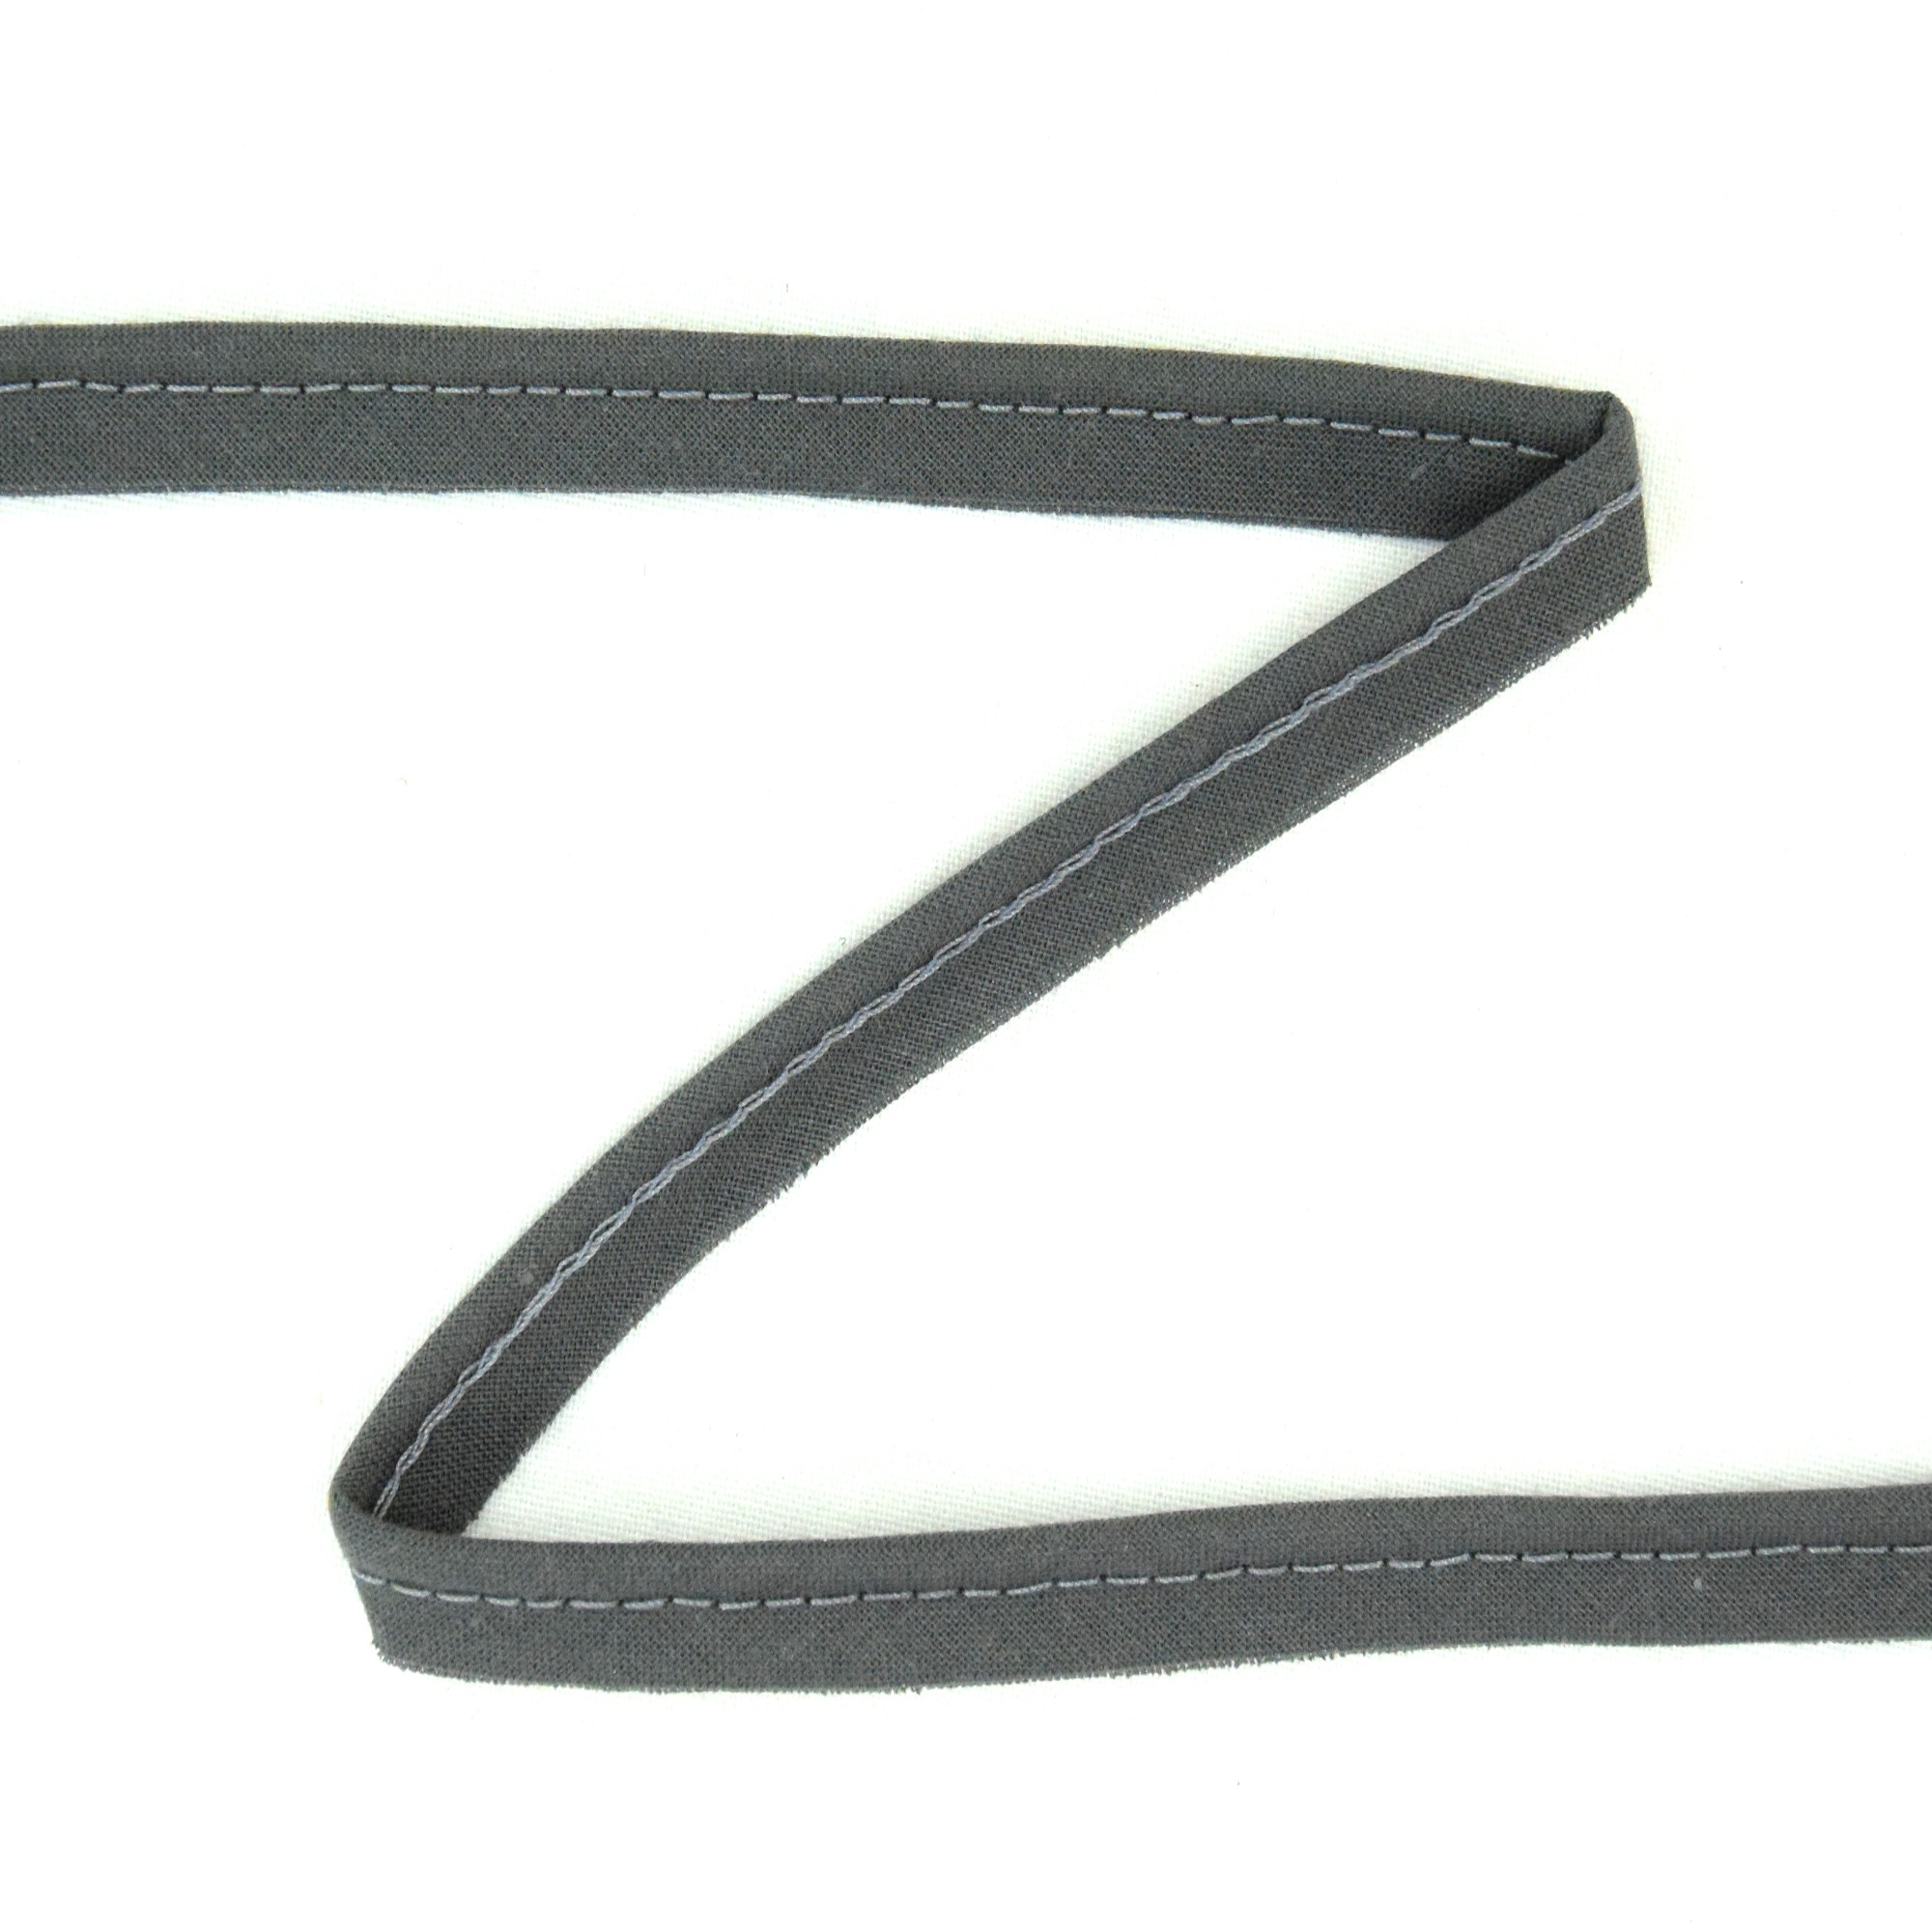 Piping ribbon, dark grey | 310-133 | grau